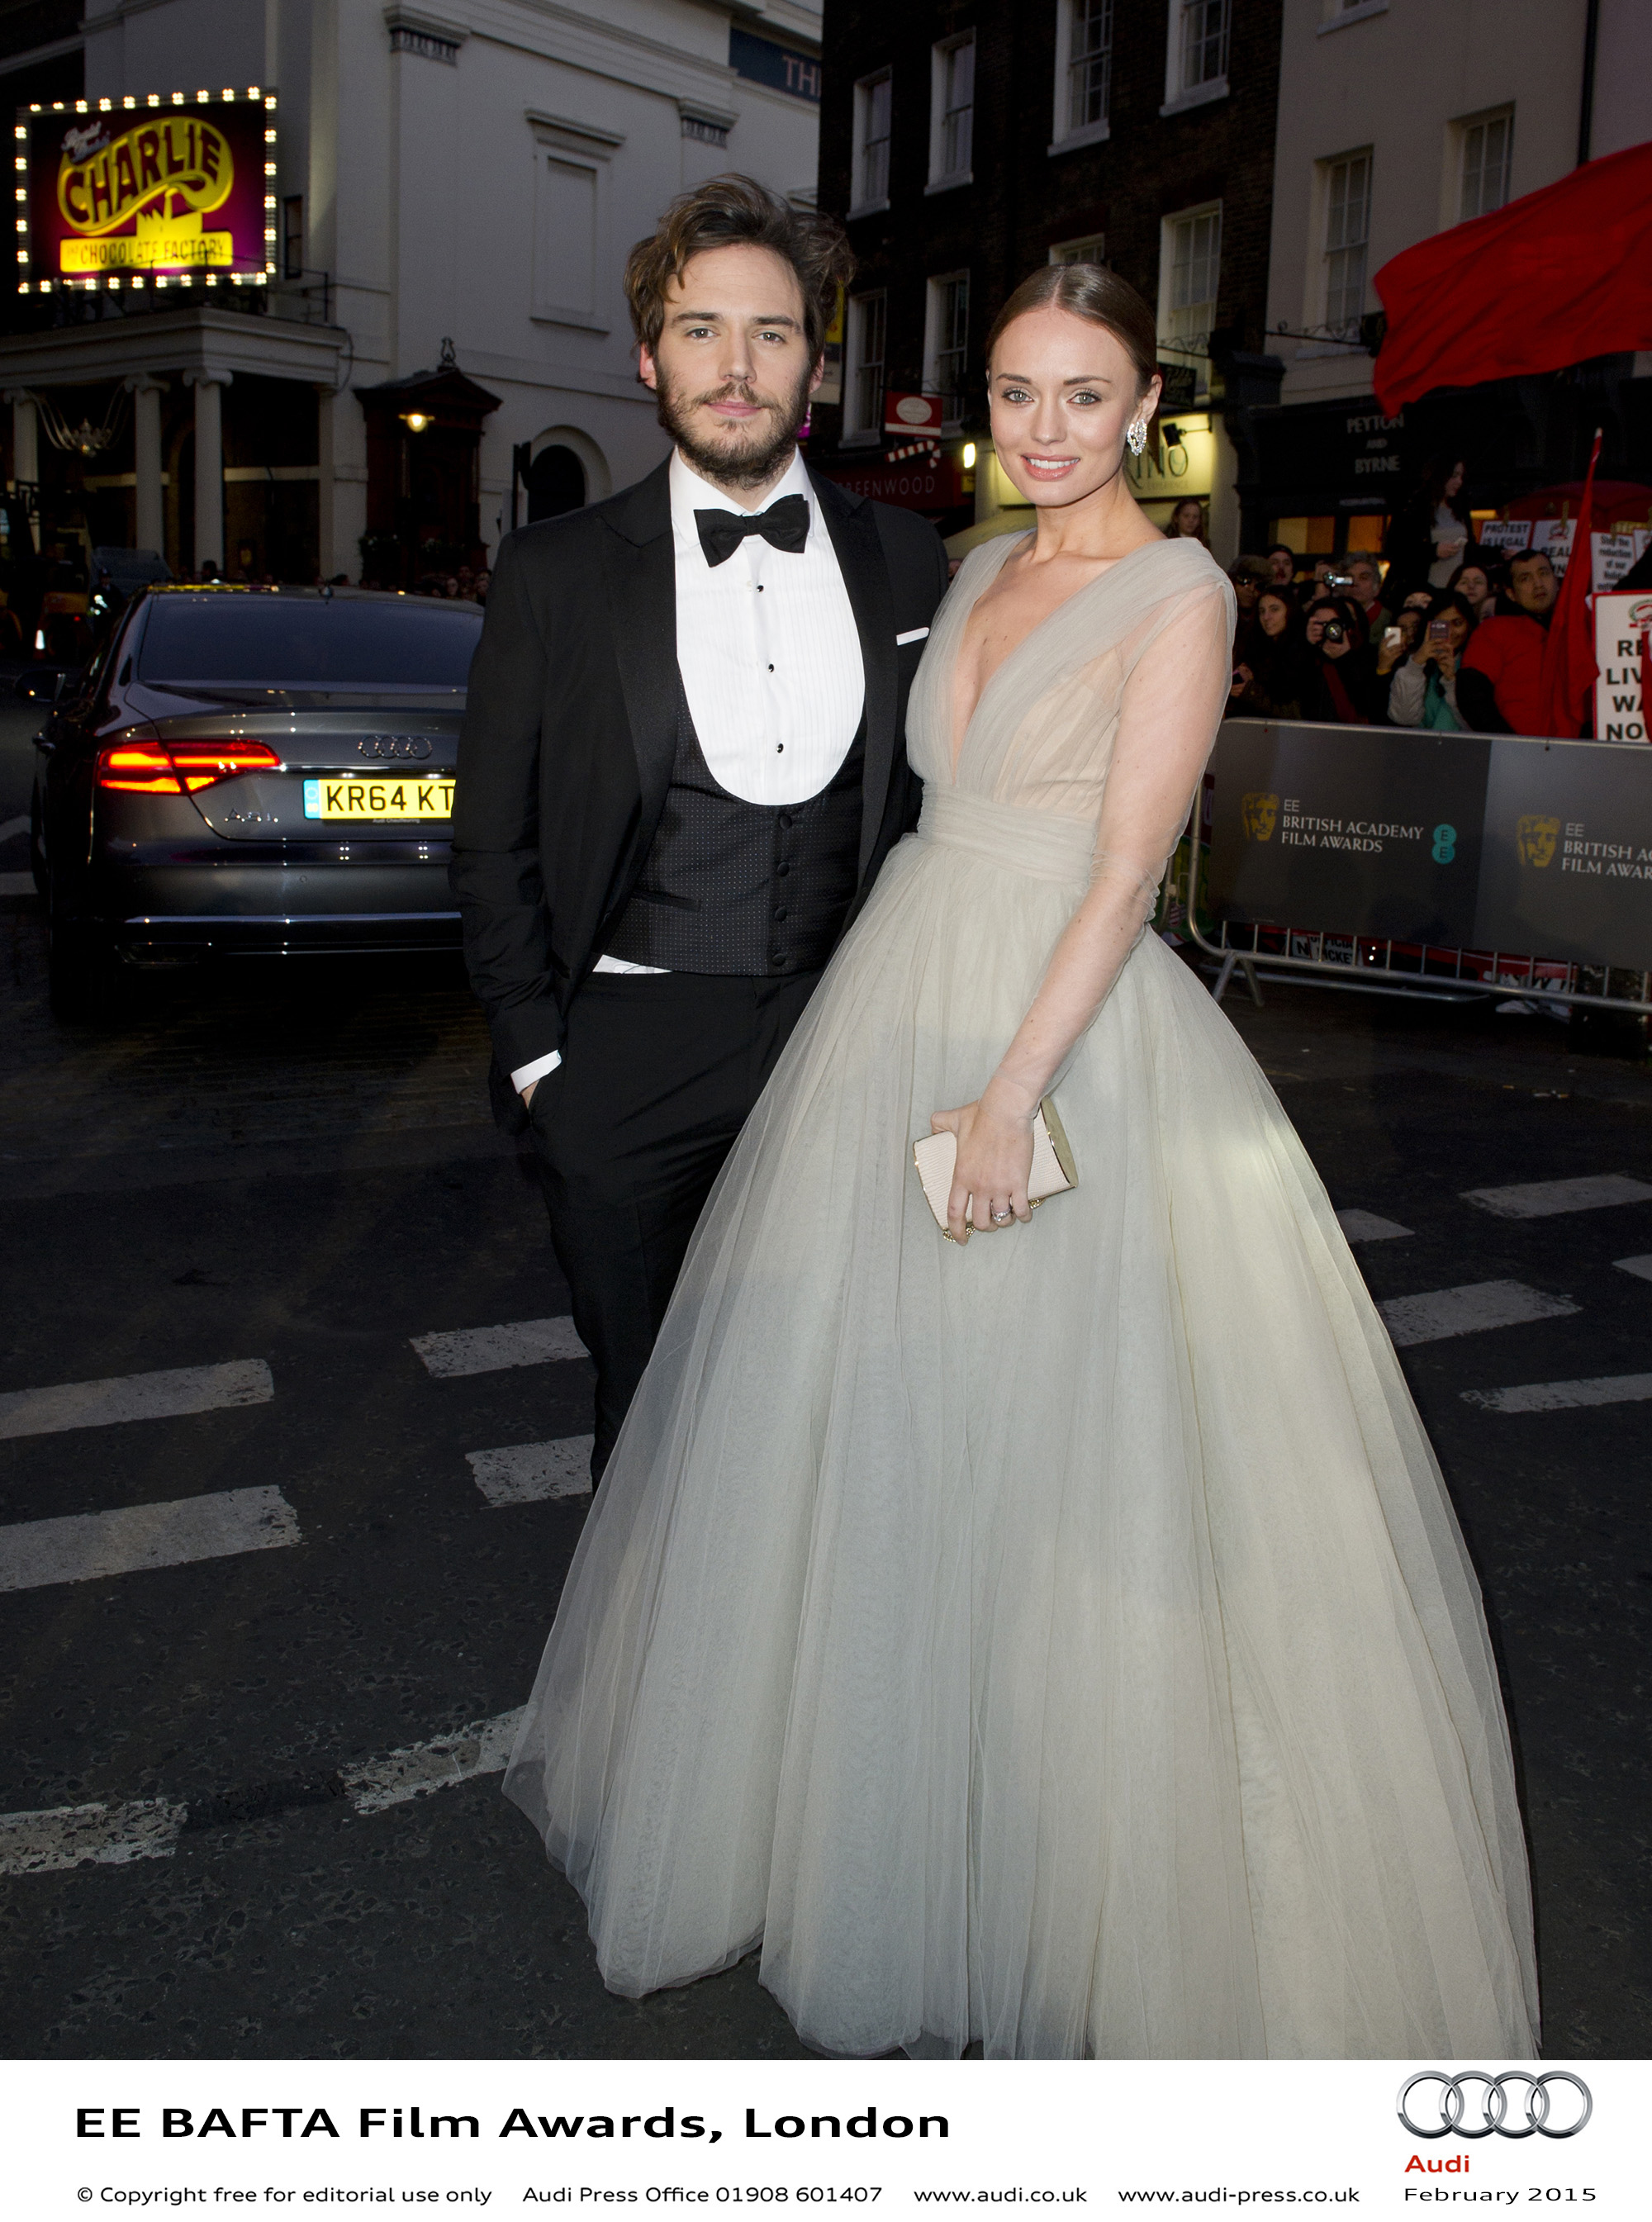 Sam Claflin and Laura Haddock - EE BAFTA Film Awards